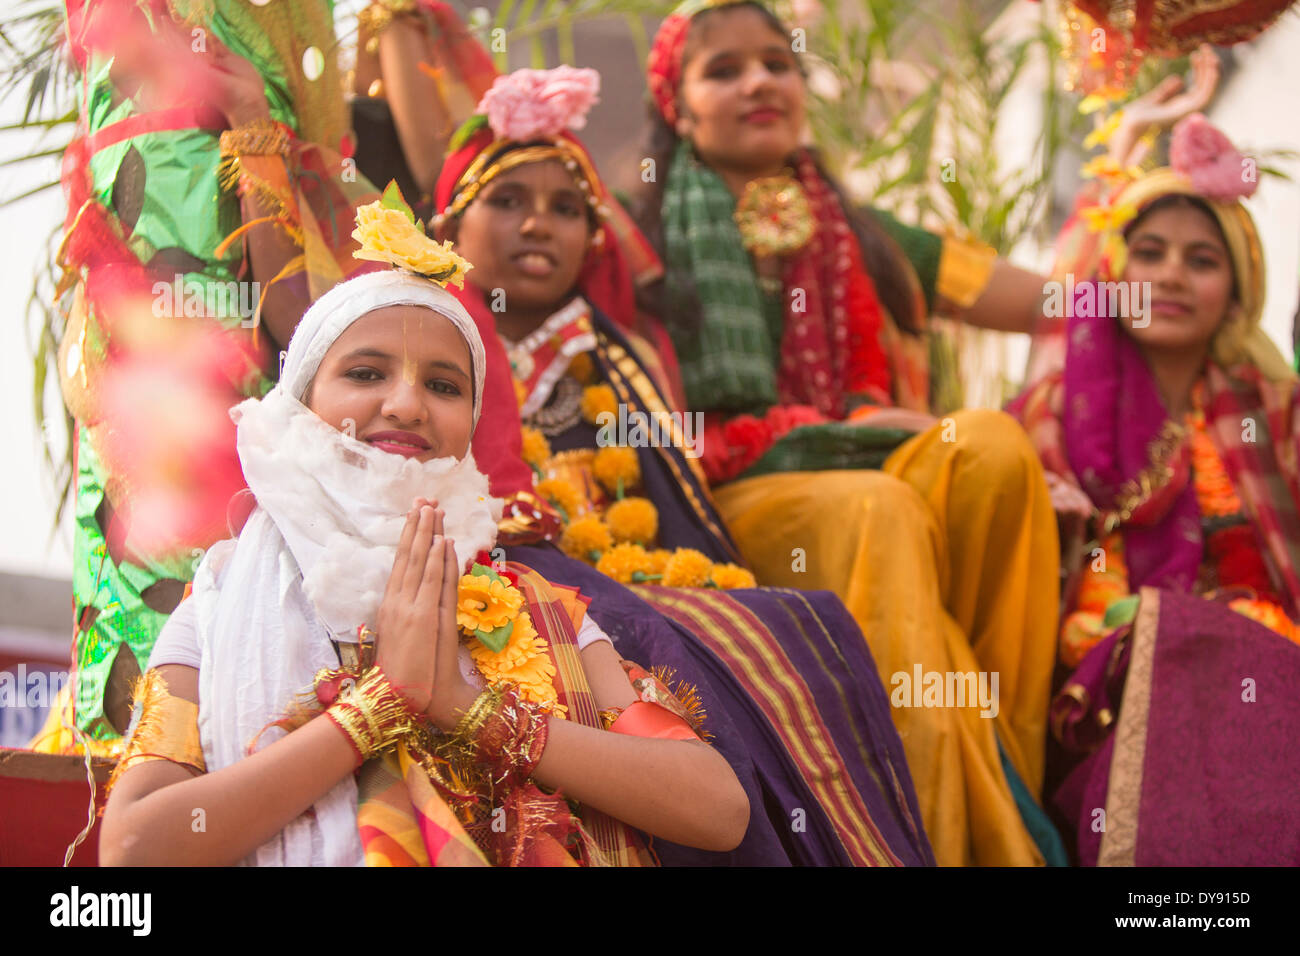 People, Delhi, Asia, town, city, people, traditional, - Stock Image